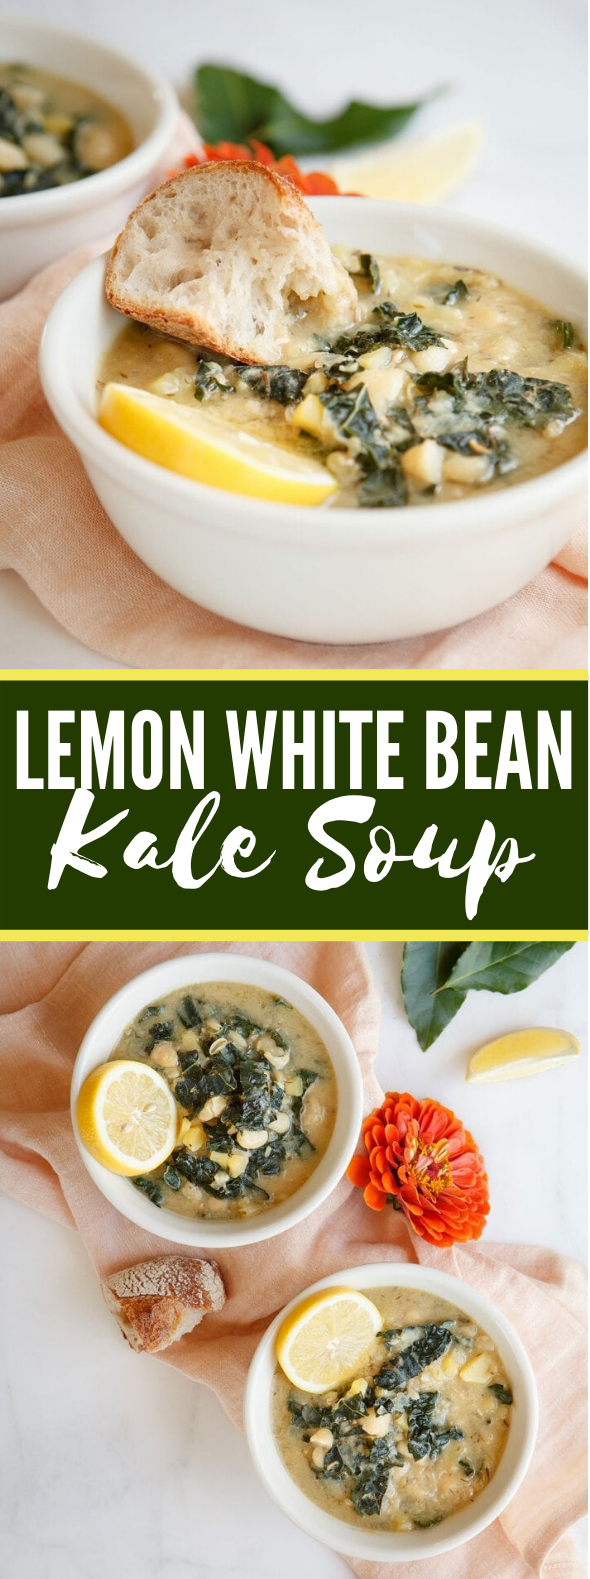 LEMON WHITE BEAN KALE SOUP #vegetarian #appetizers